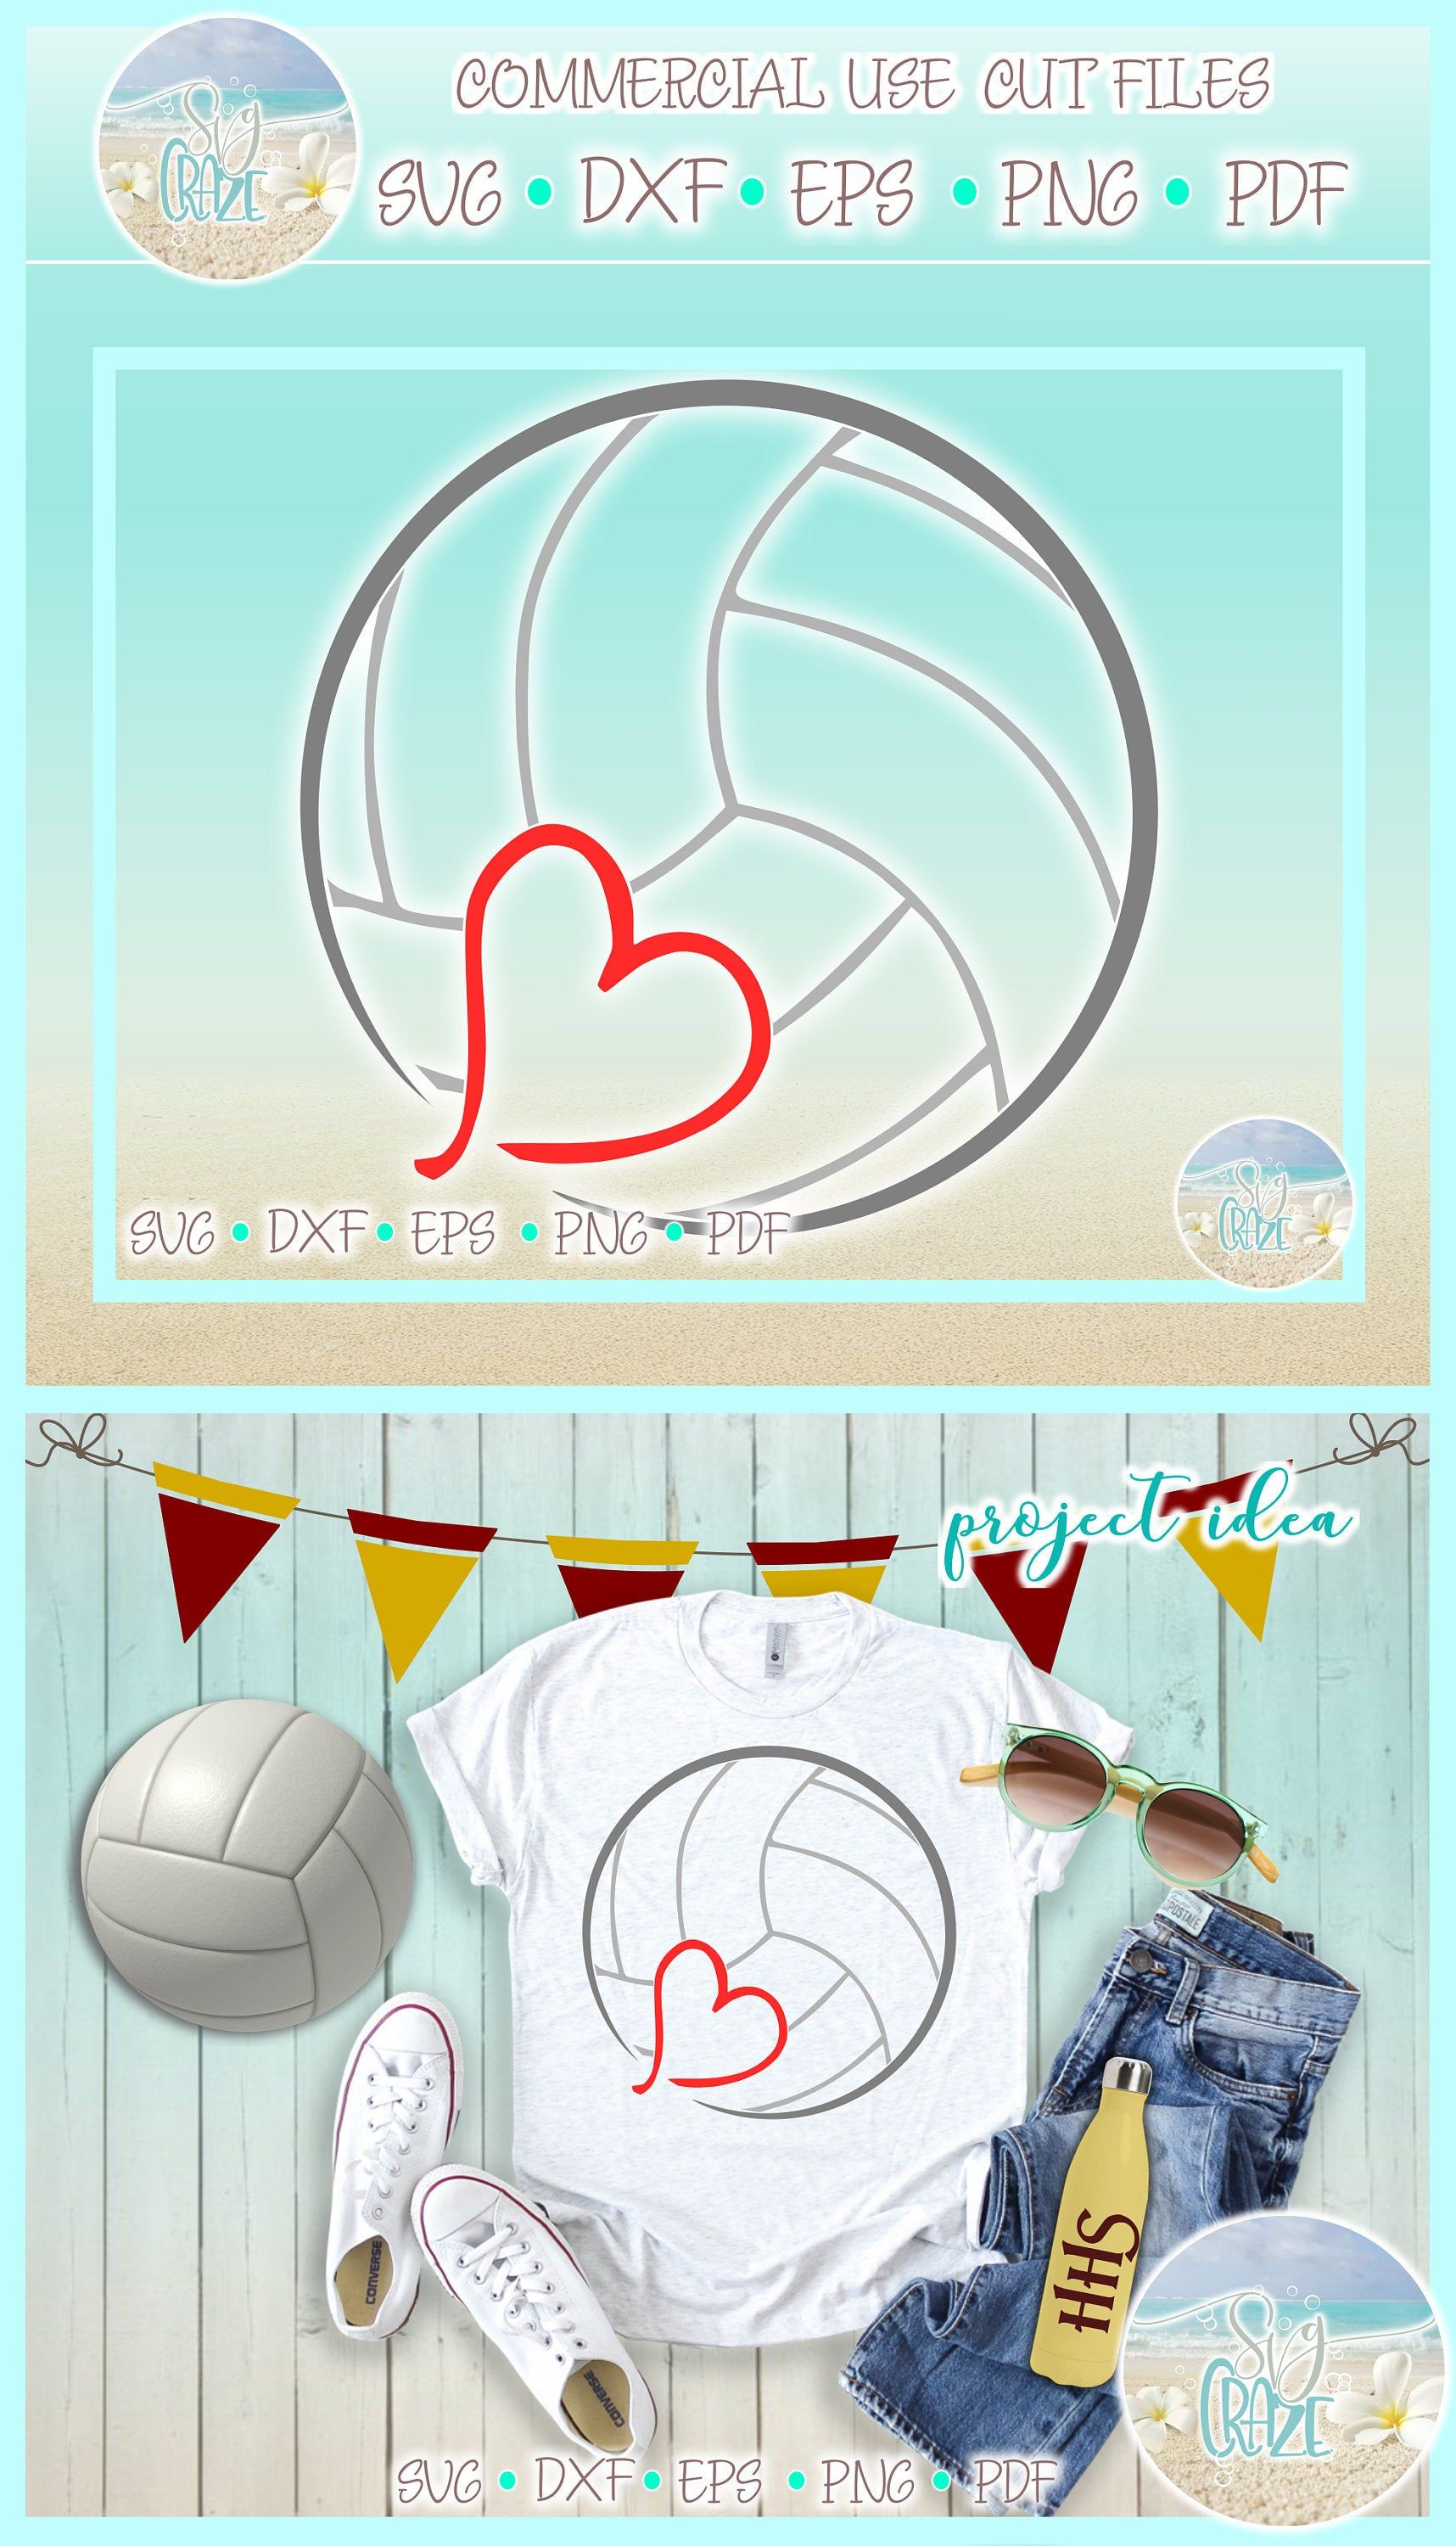 Volleyball With Heart Sports Enthusiast SVG Dxf Eps Png